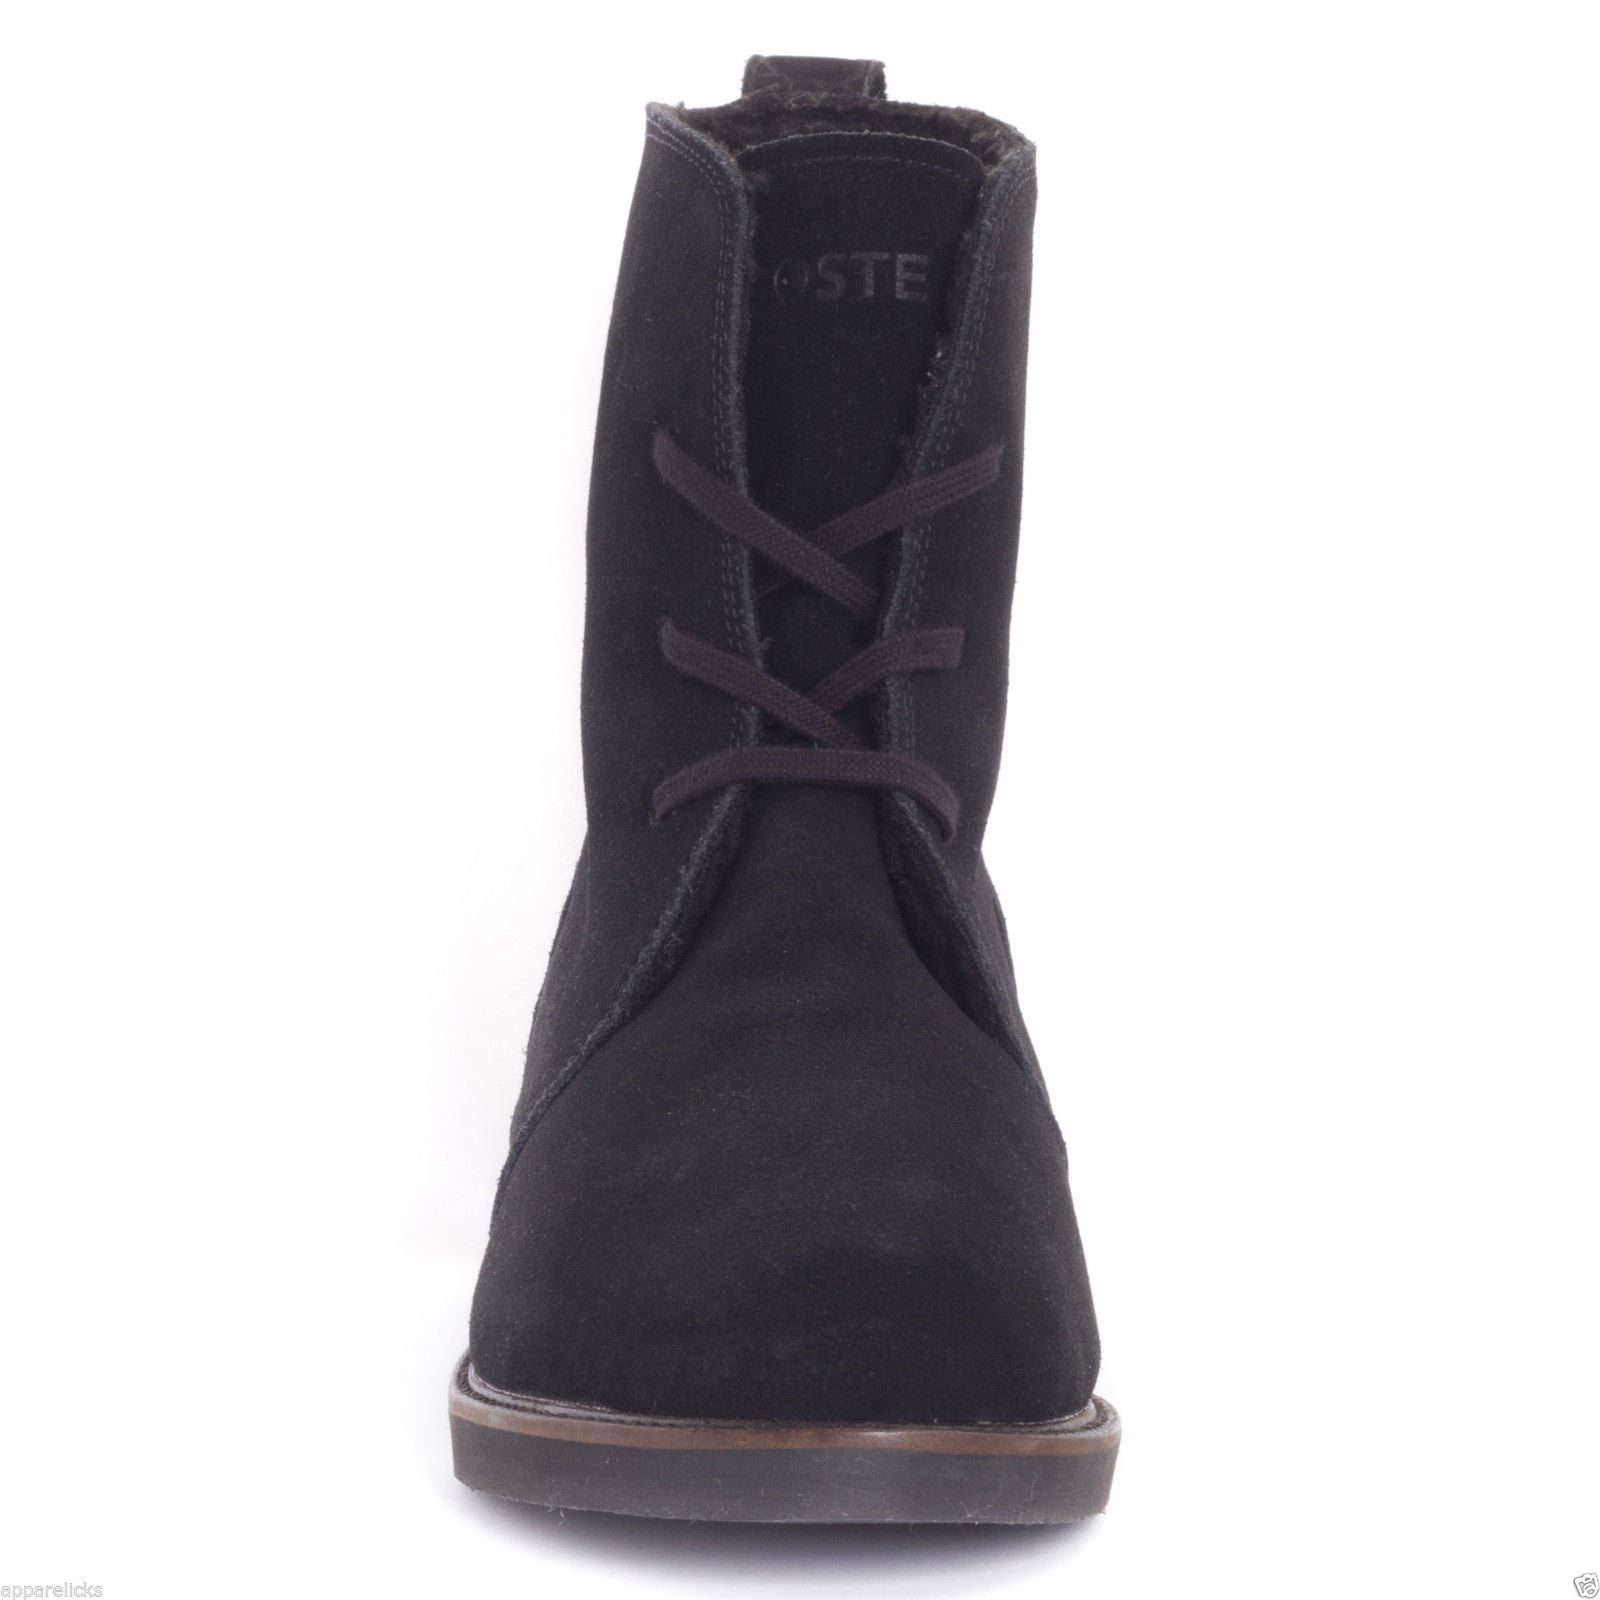 Awesome Details About Lacoste Zerubia 2 Ladies Snow Boots Black